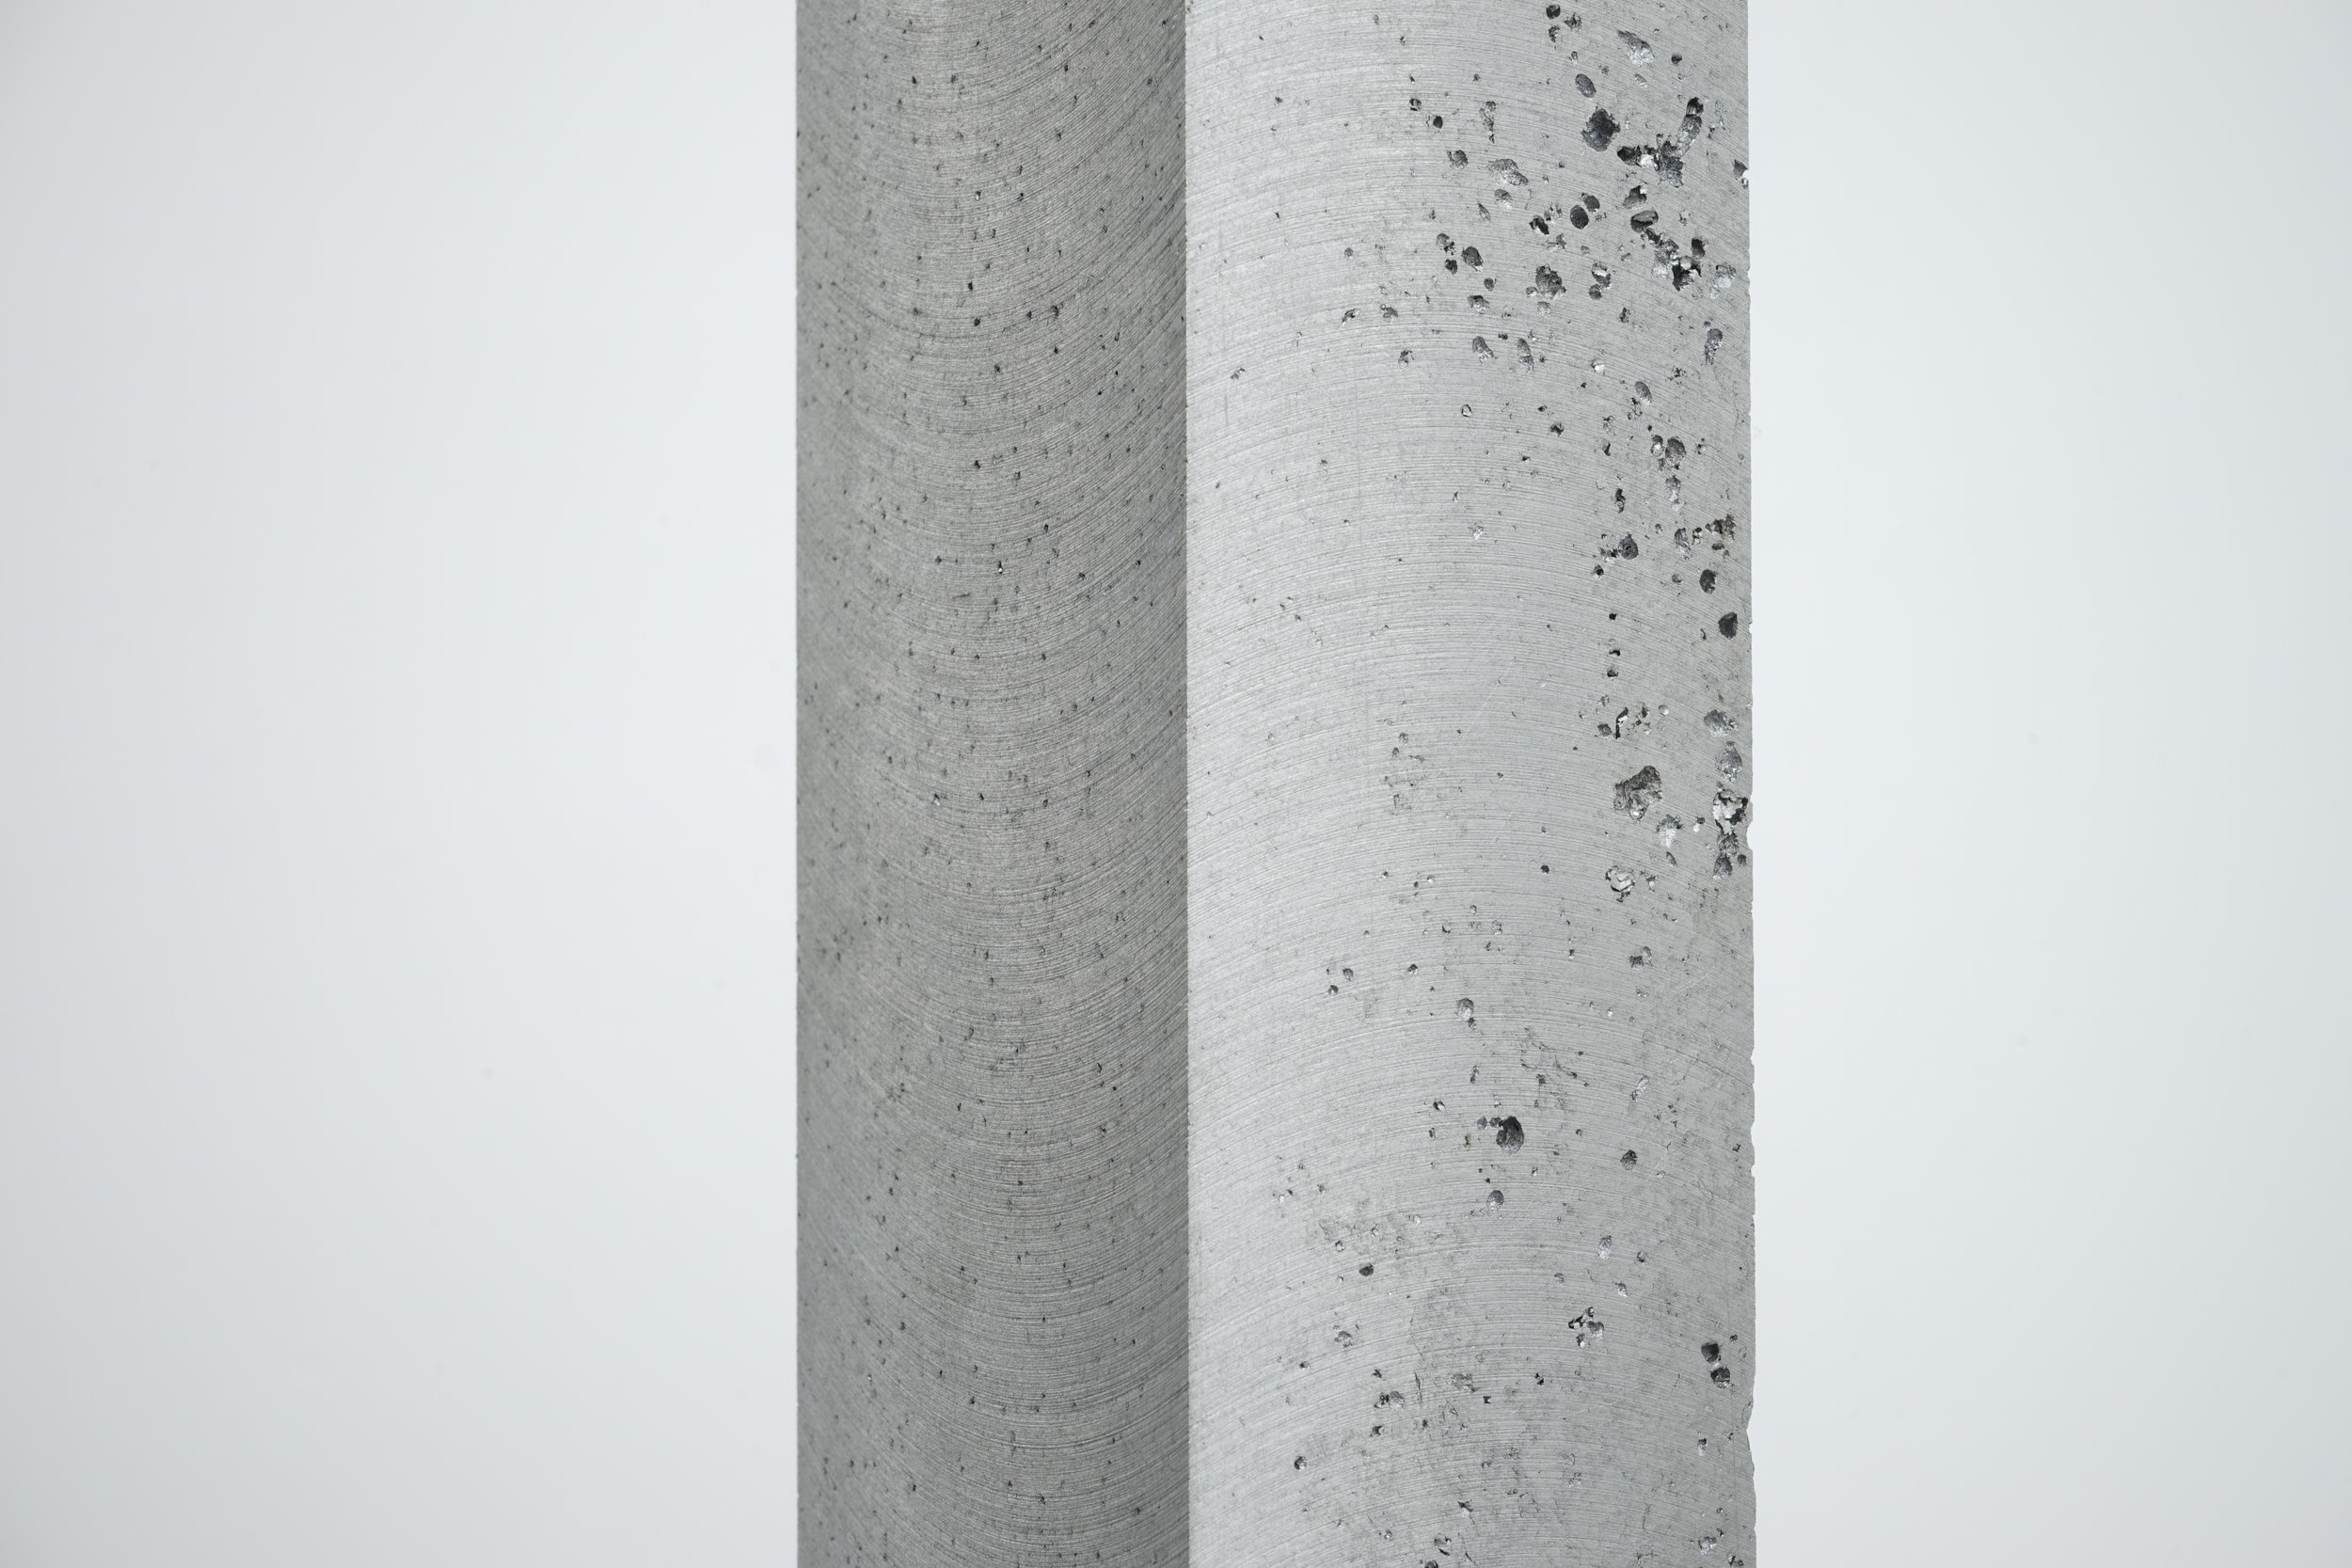 Close up image of one of Daniel Turner's aluminum and steel cast bars showing detail of the poured sculpture